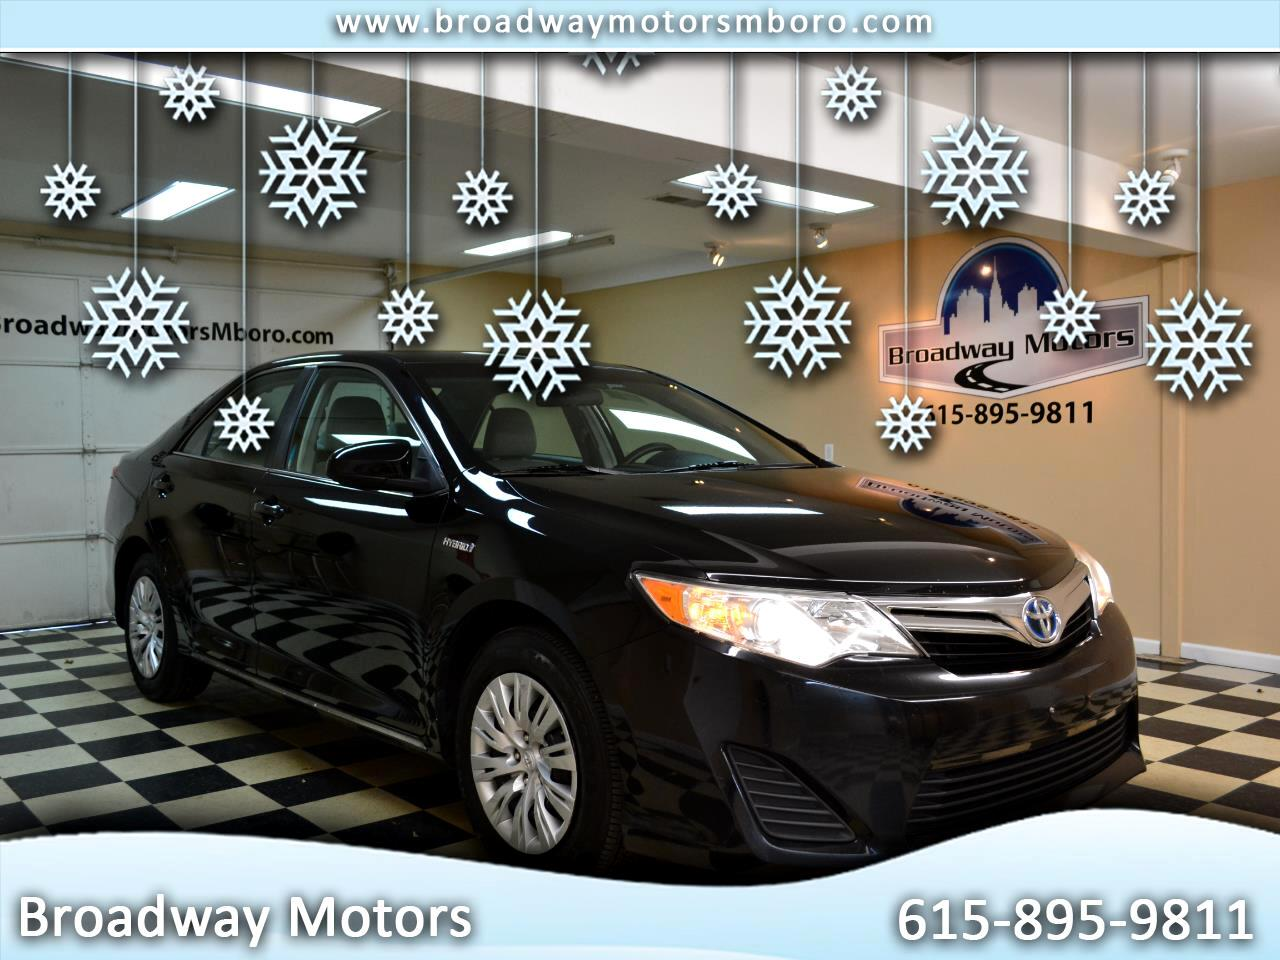 Toyota Camry Hybrid 2014.5 4dr Sdn LE (Natl) 2014